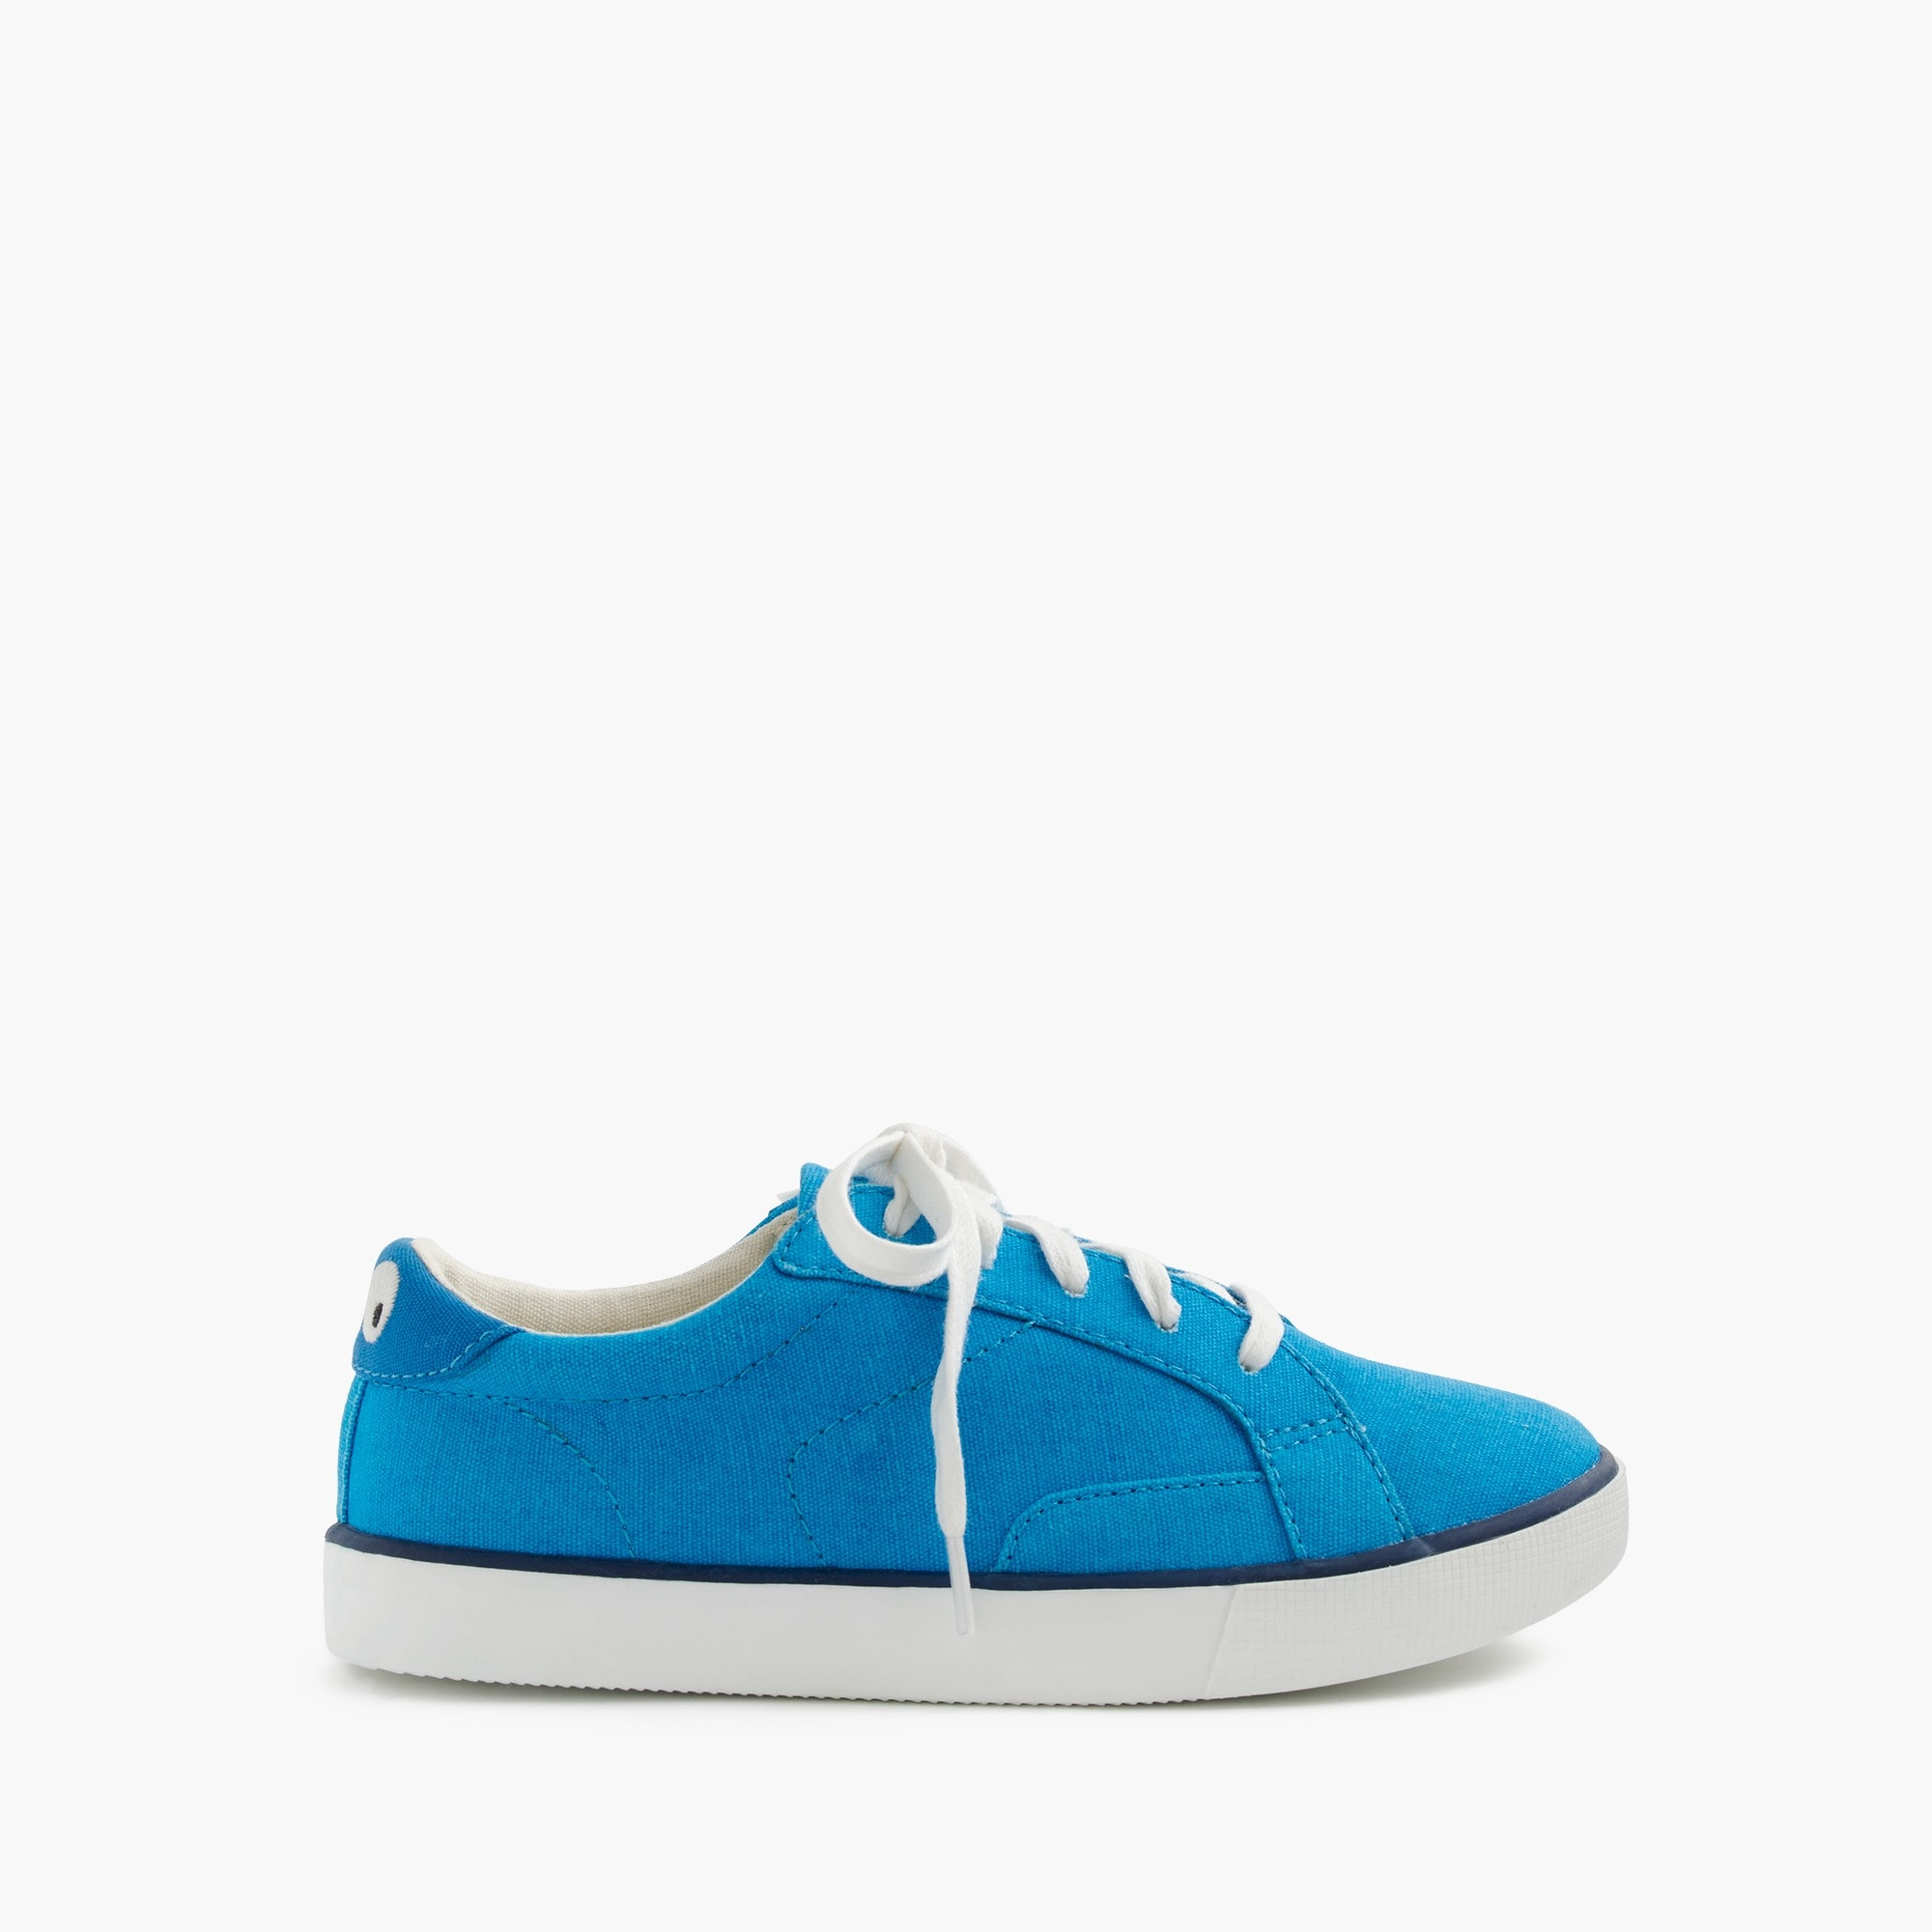 kids' max the monster lace-up sneakers : boy sneakers